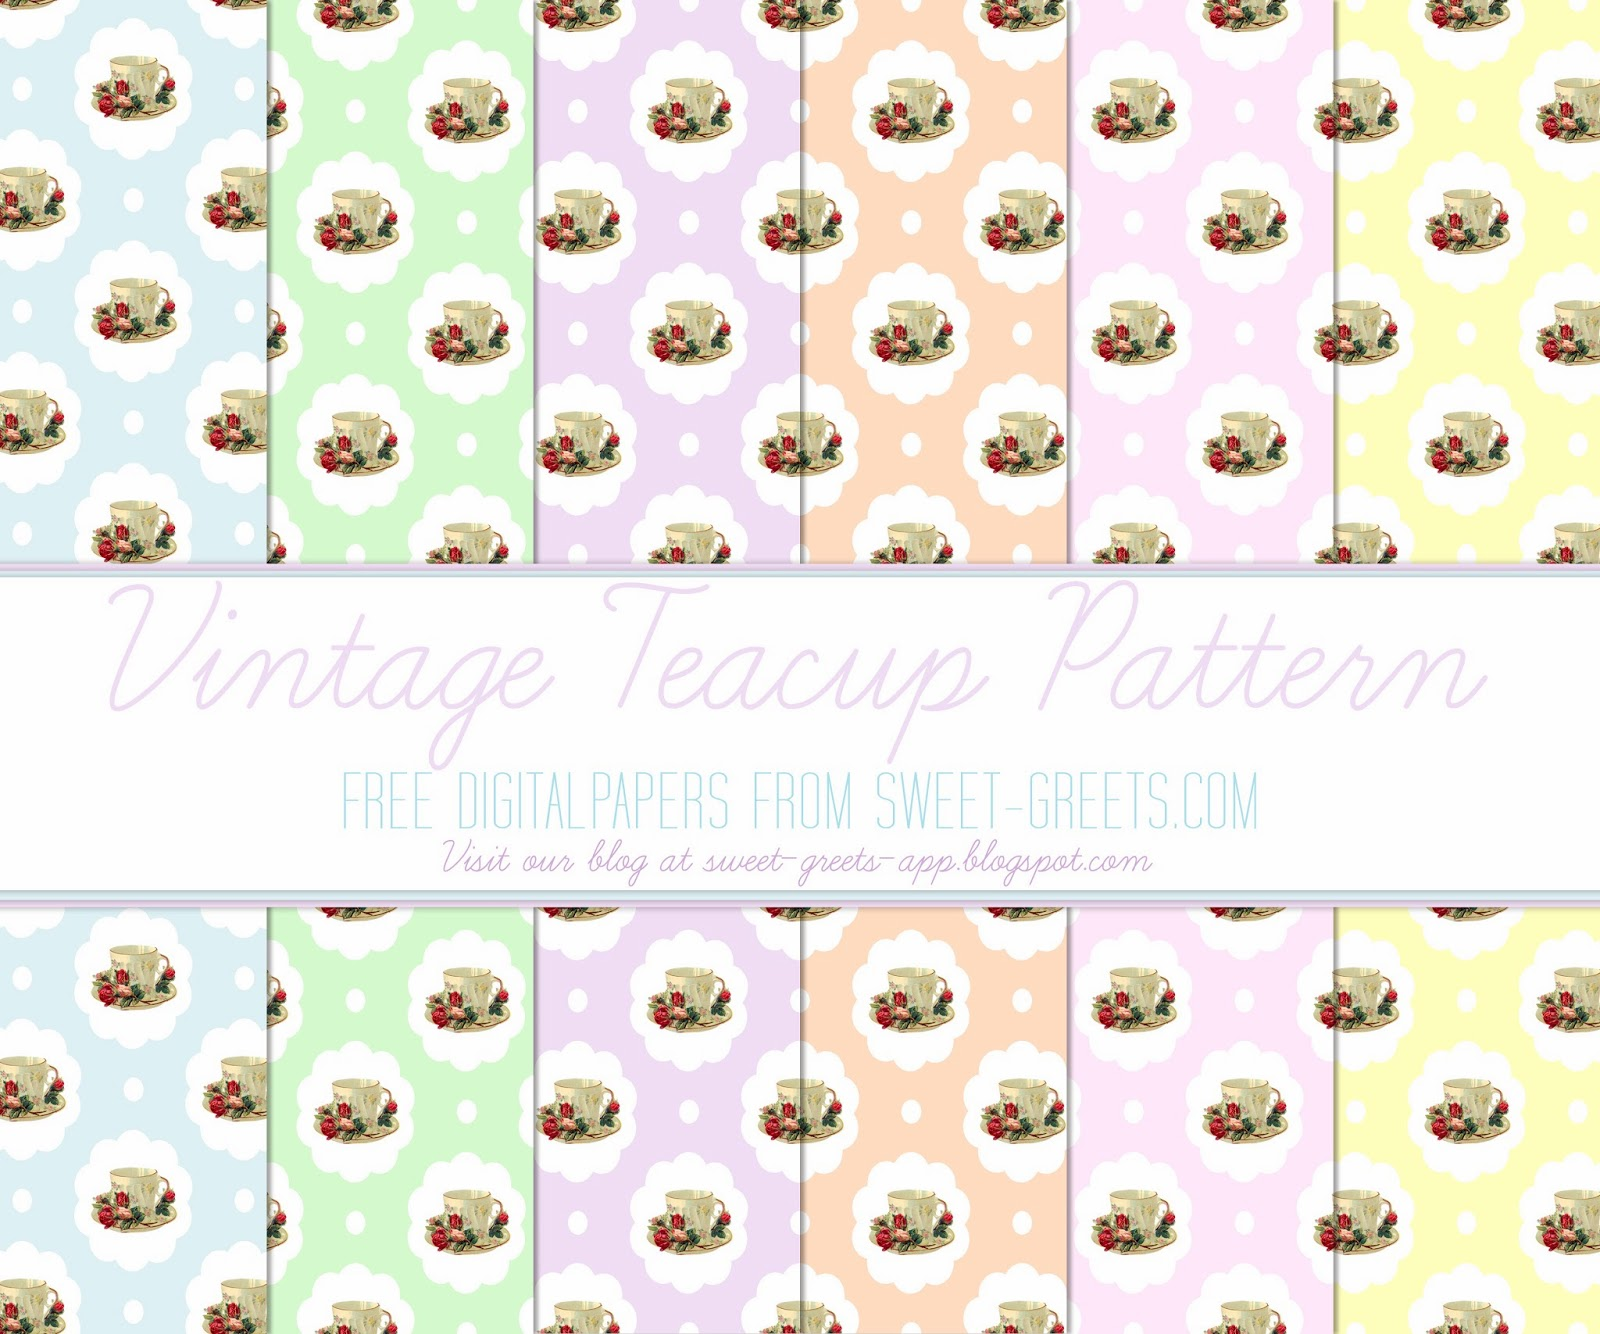 Free Digital Paper: Vintage Teacups